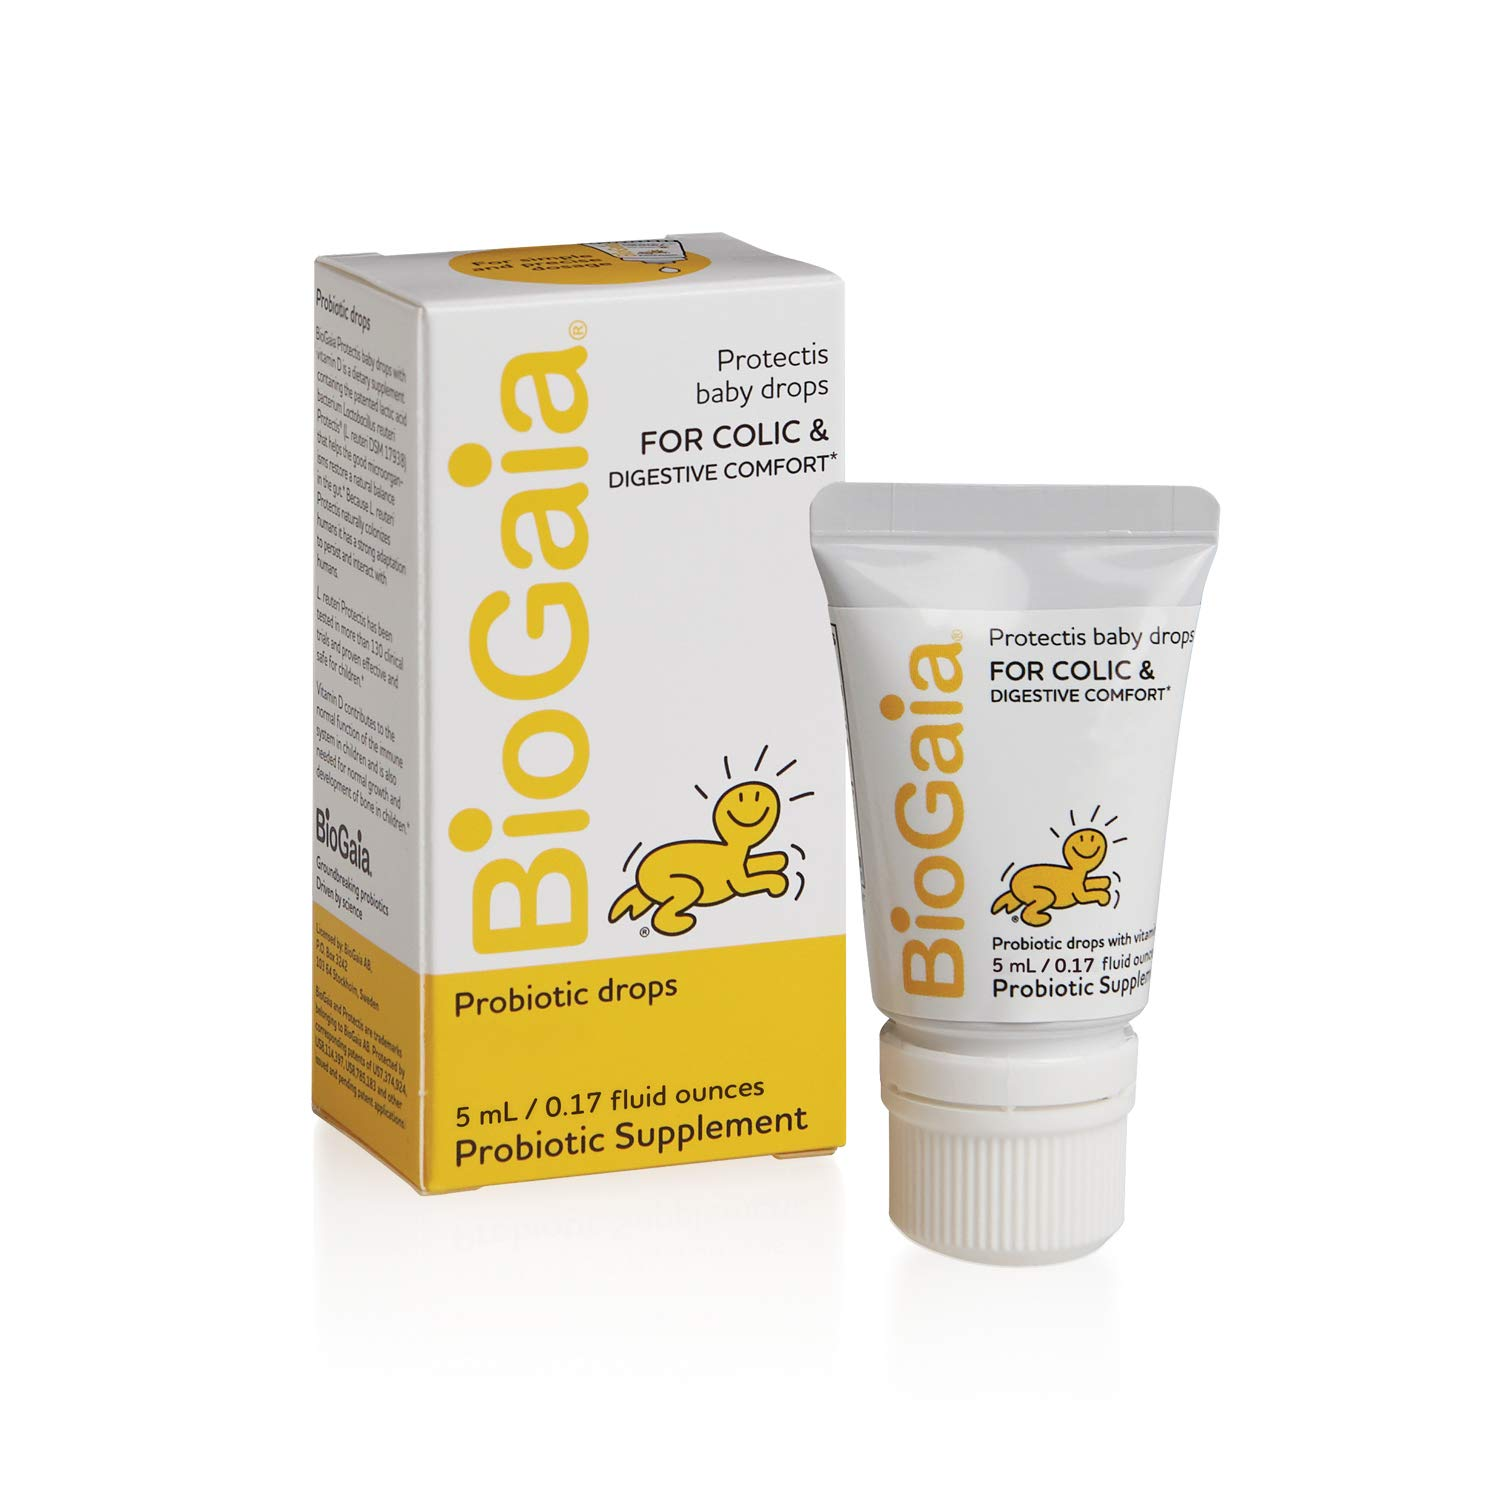 BioGaia Protectis Probiotics Drops for Baby, Infants, Newborn and Kids Colic, Spit-Up, Constipation and Digestive Comfort, 5 ML, 0.17 oz, 1 Pack by BioGaia